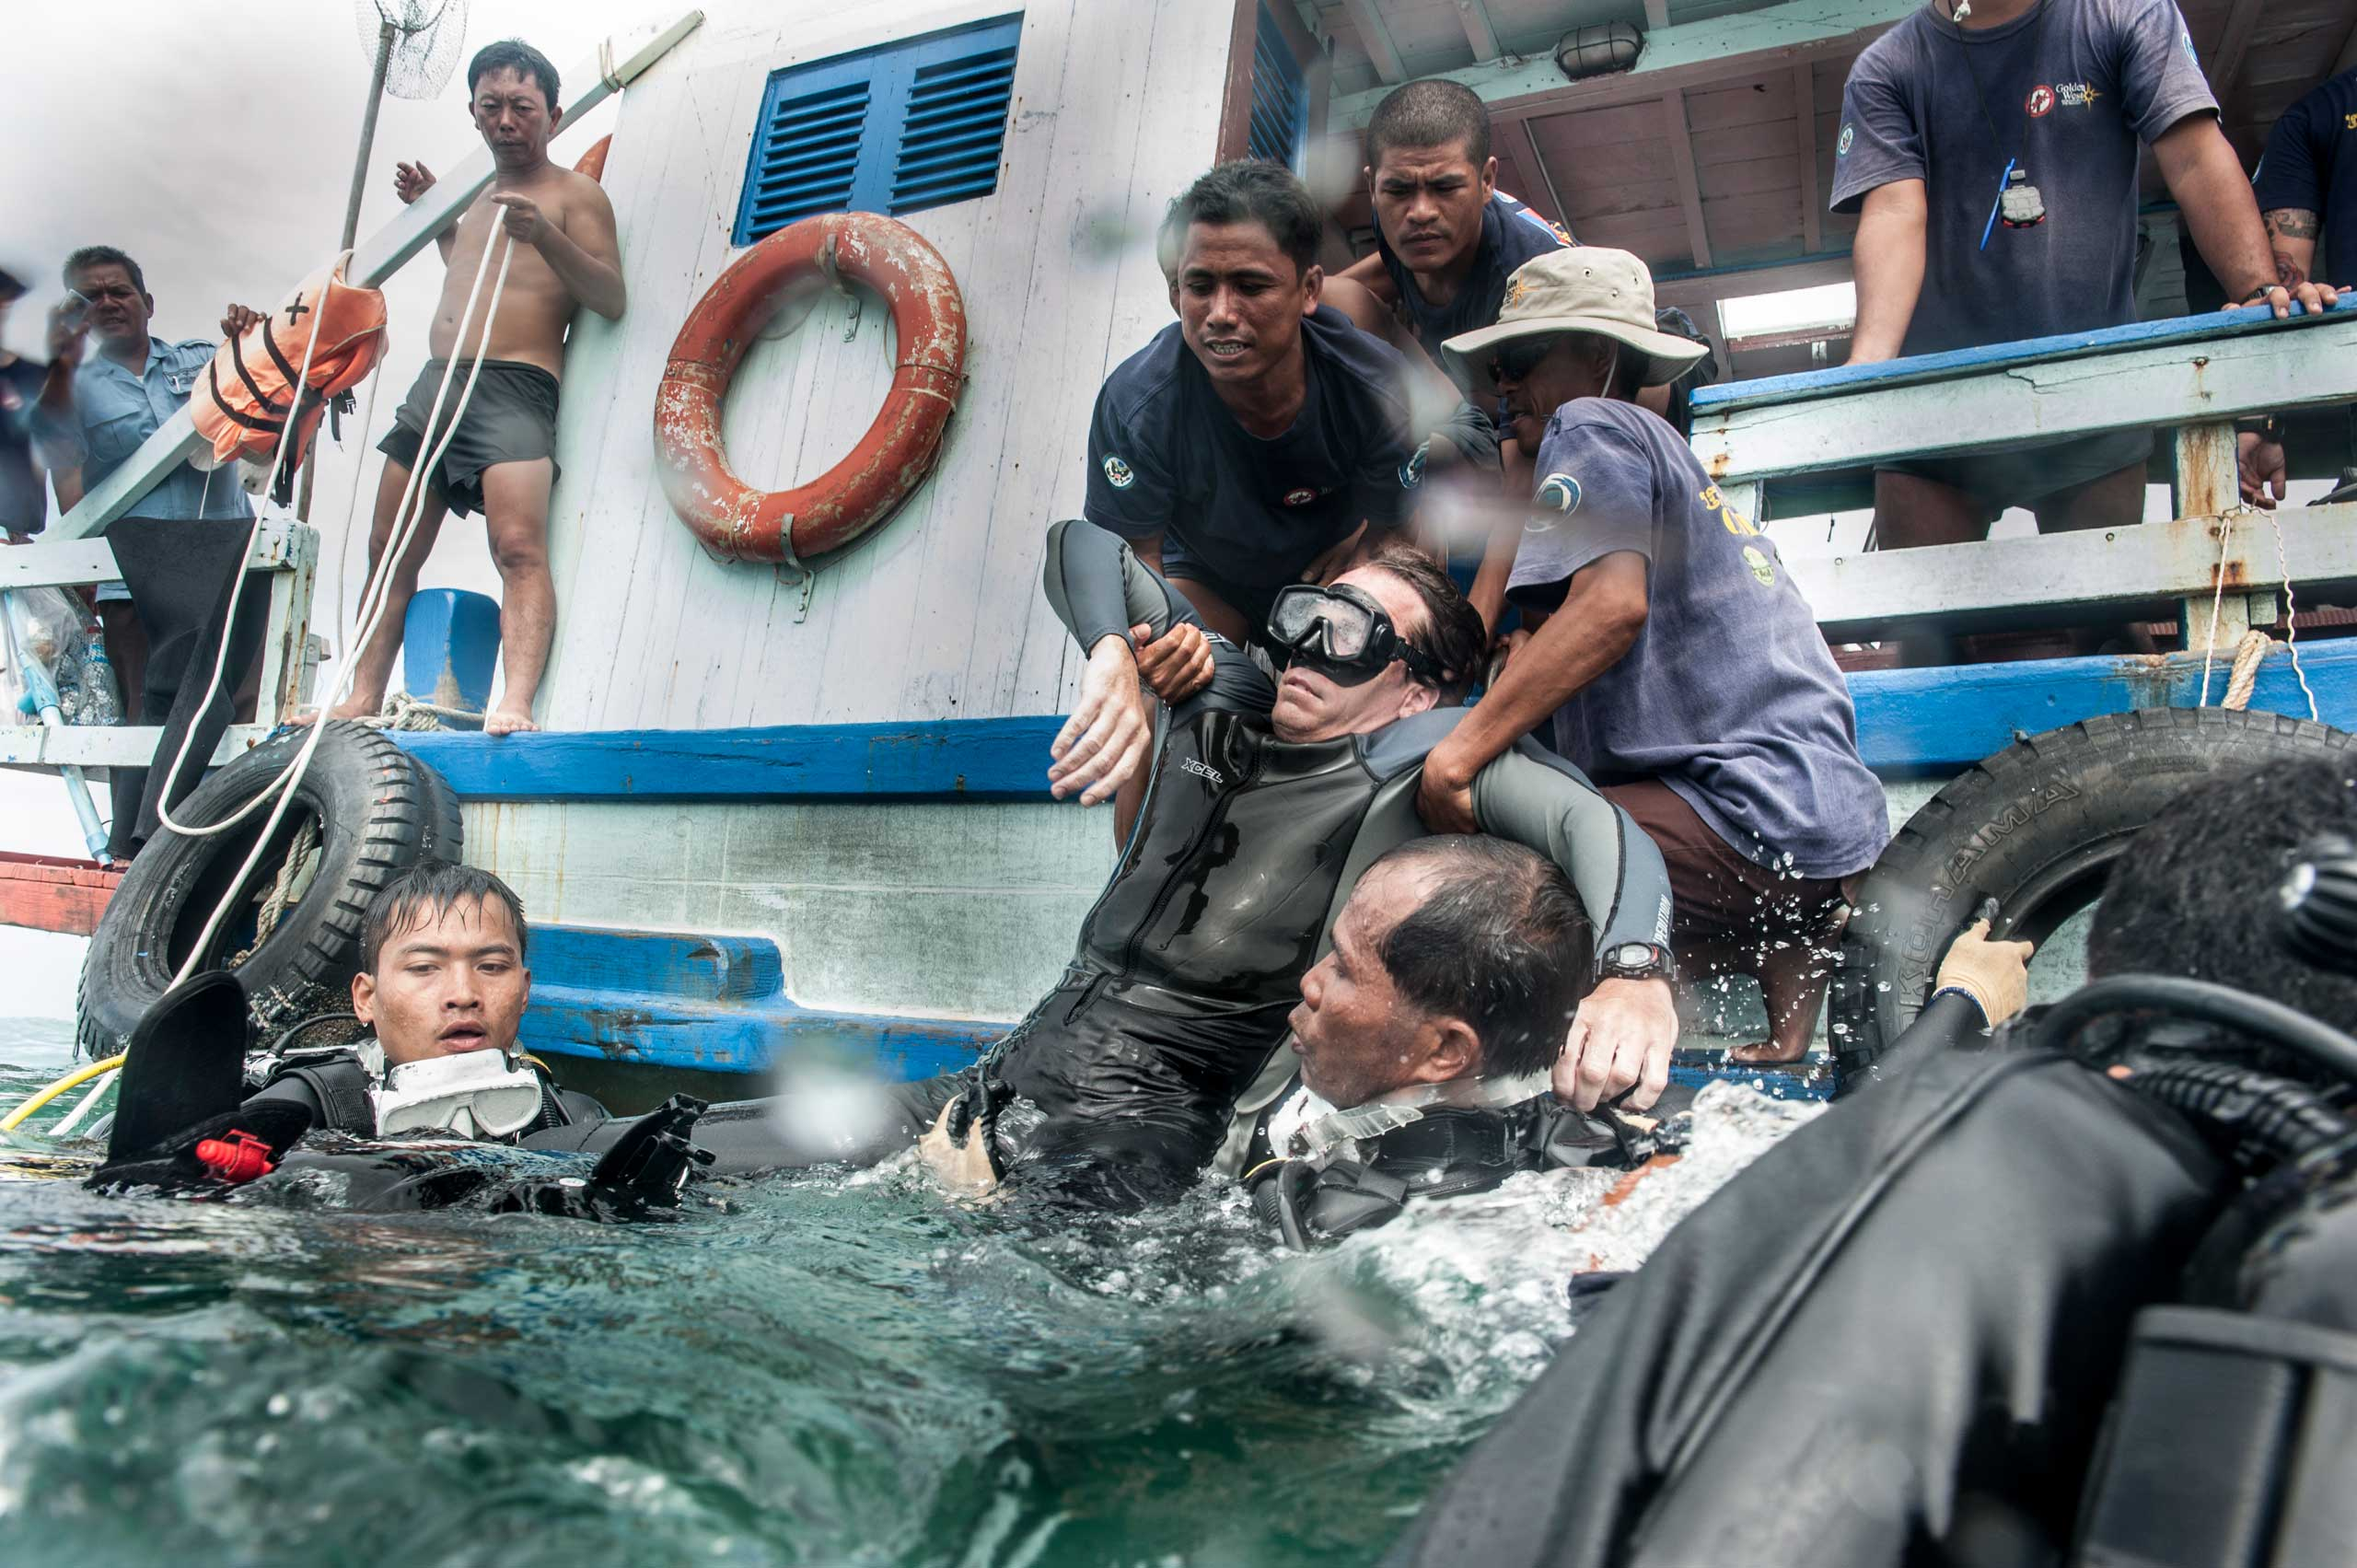 Members of the UXO salvage dive team practice removing a stricken diver from the water in a training exercise off the coast of Sihanoukville, Cambodia in July 2014.